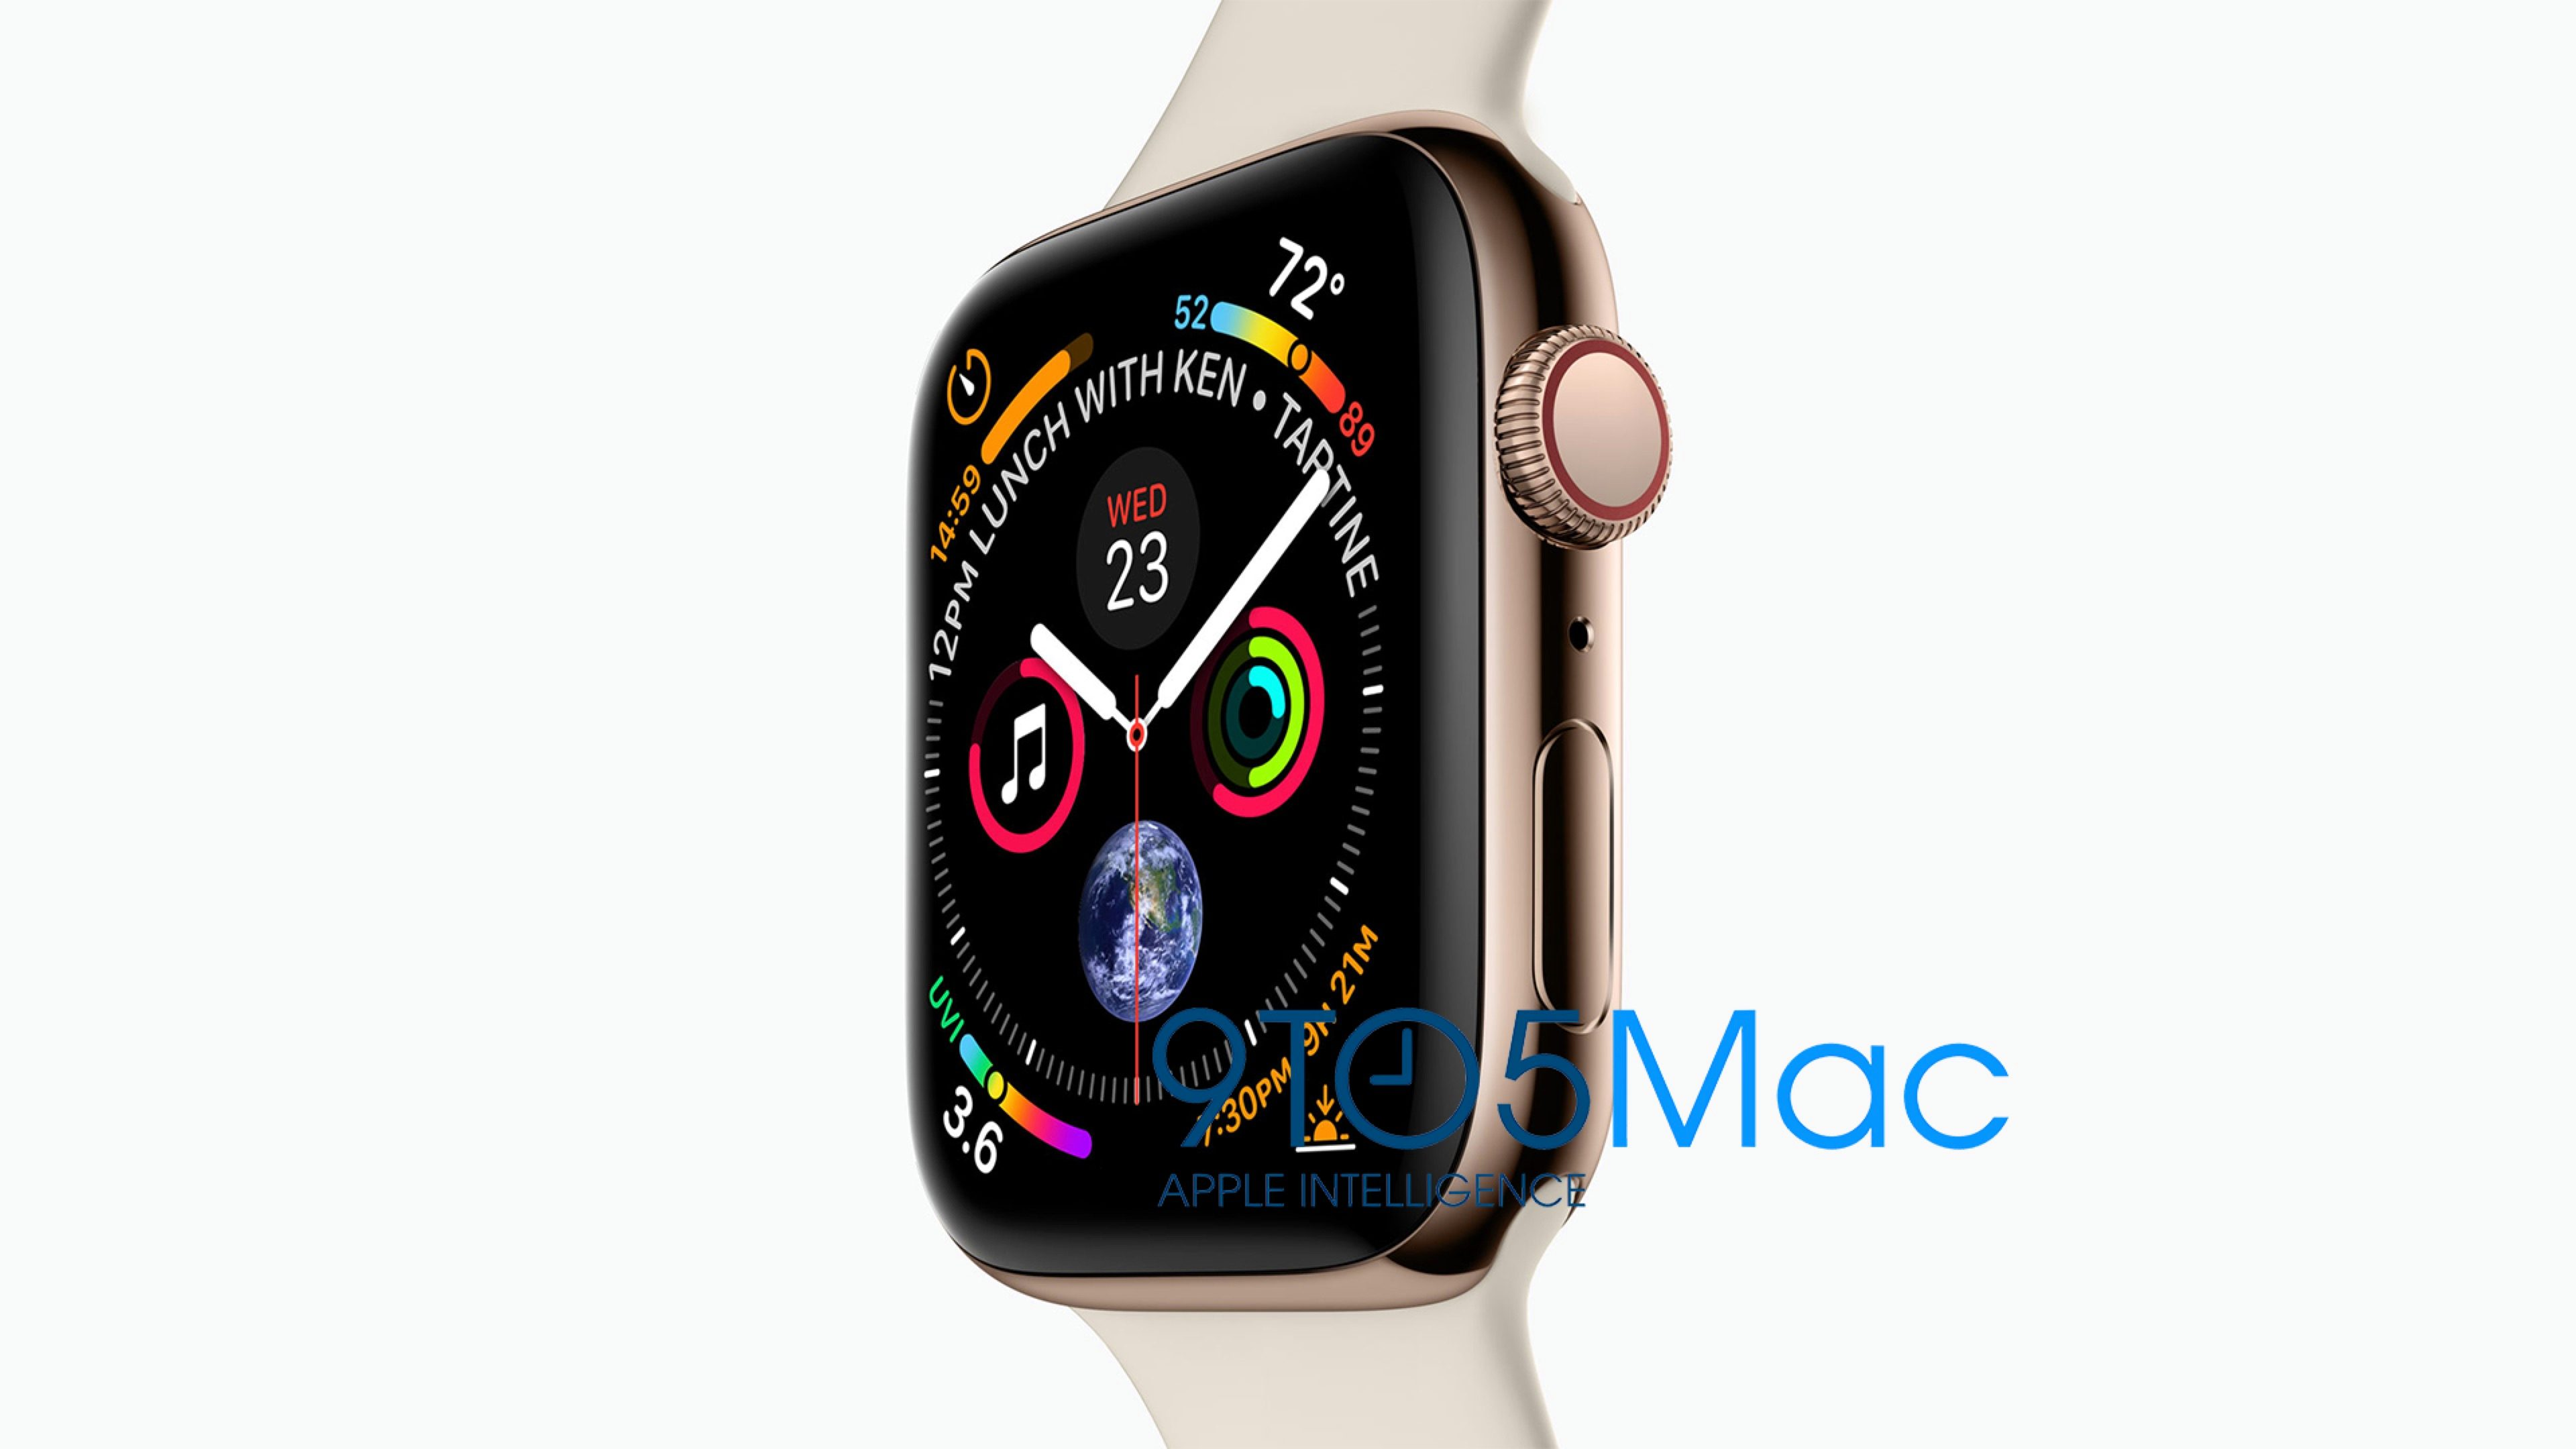 Apple Watch Series 4 Leak Reveals Larger Display and New Watch Face